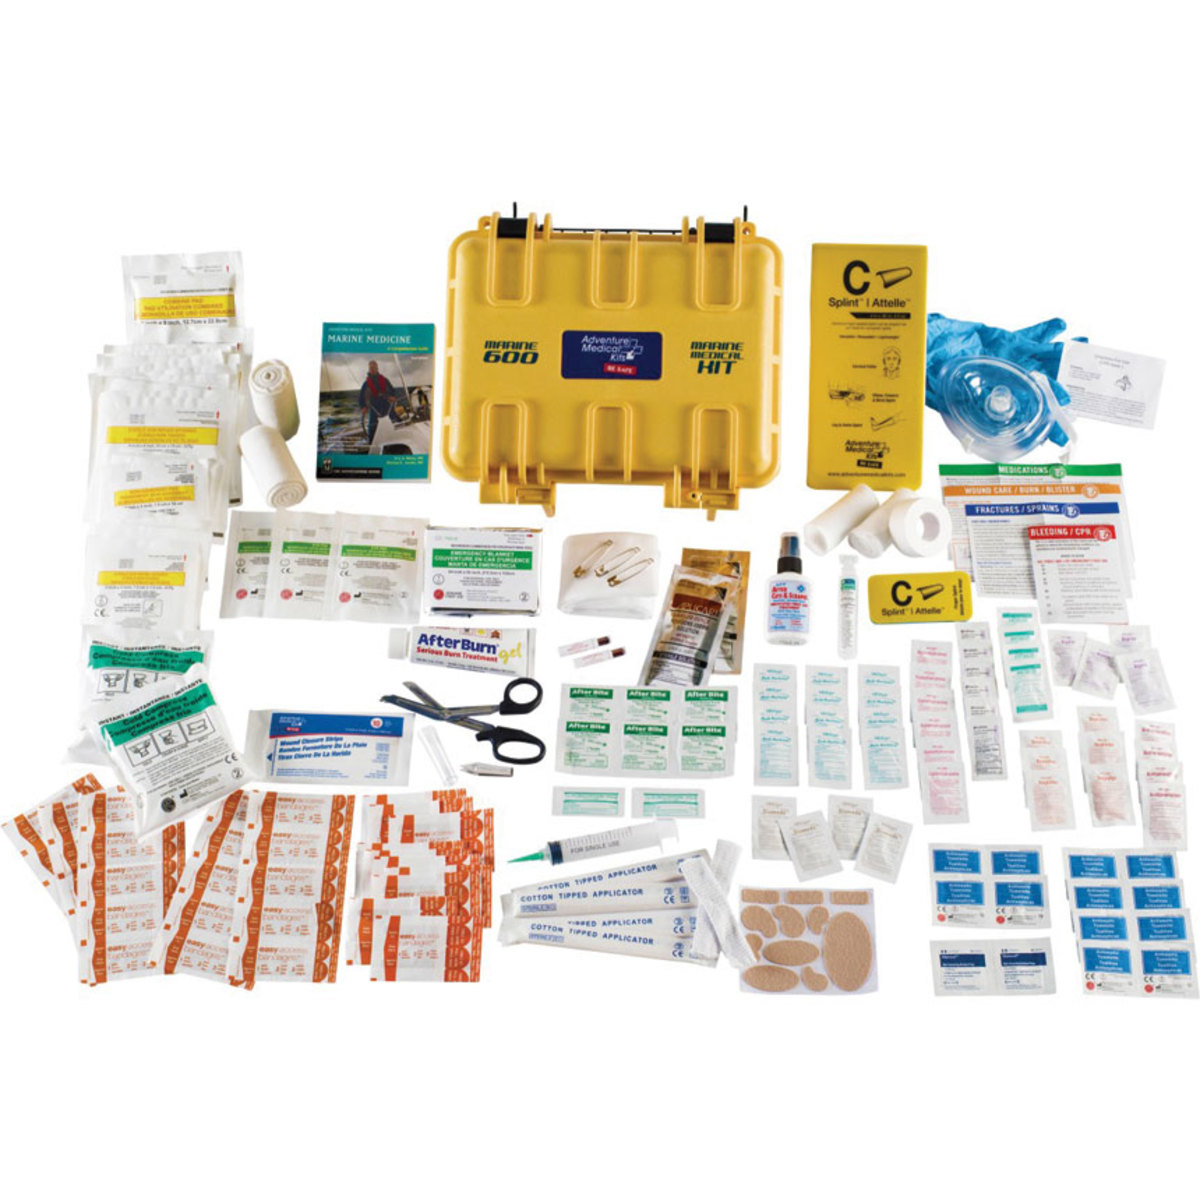 A well-stocked first aid kit is essential on the boat, but you'll need more than that to be truly prepared for an emergency.